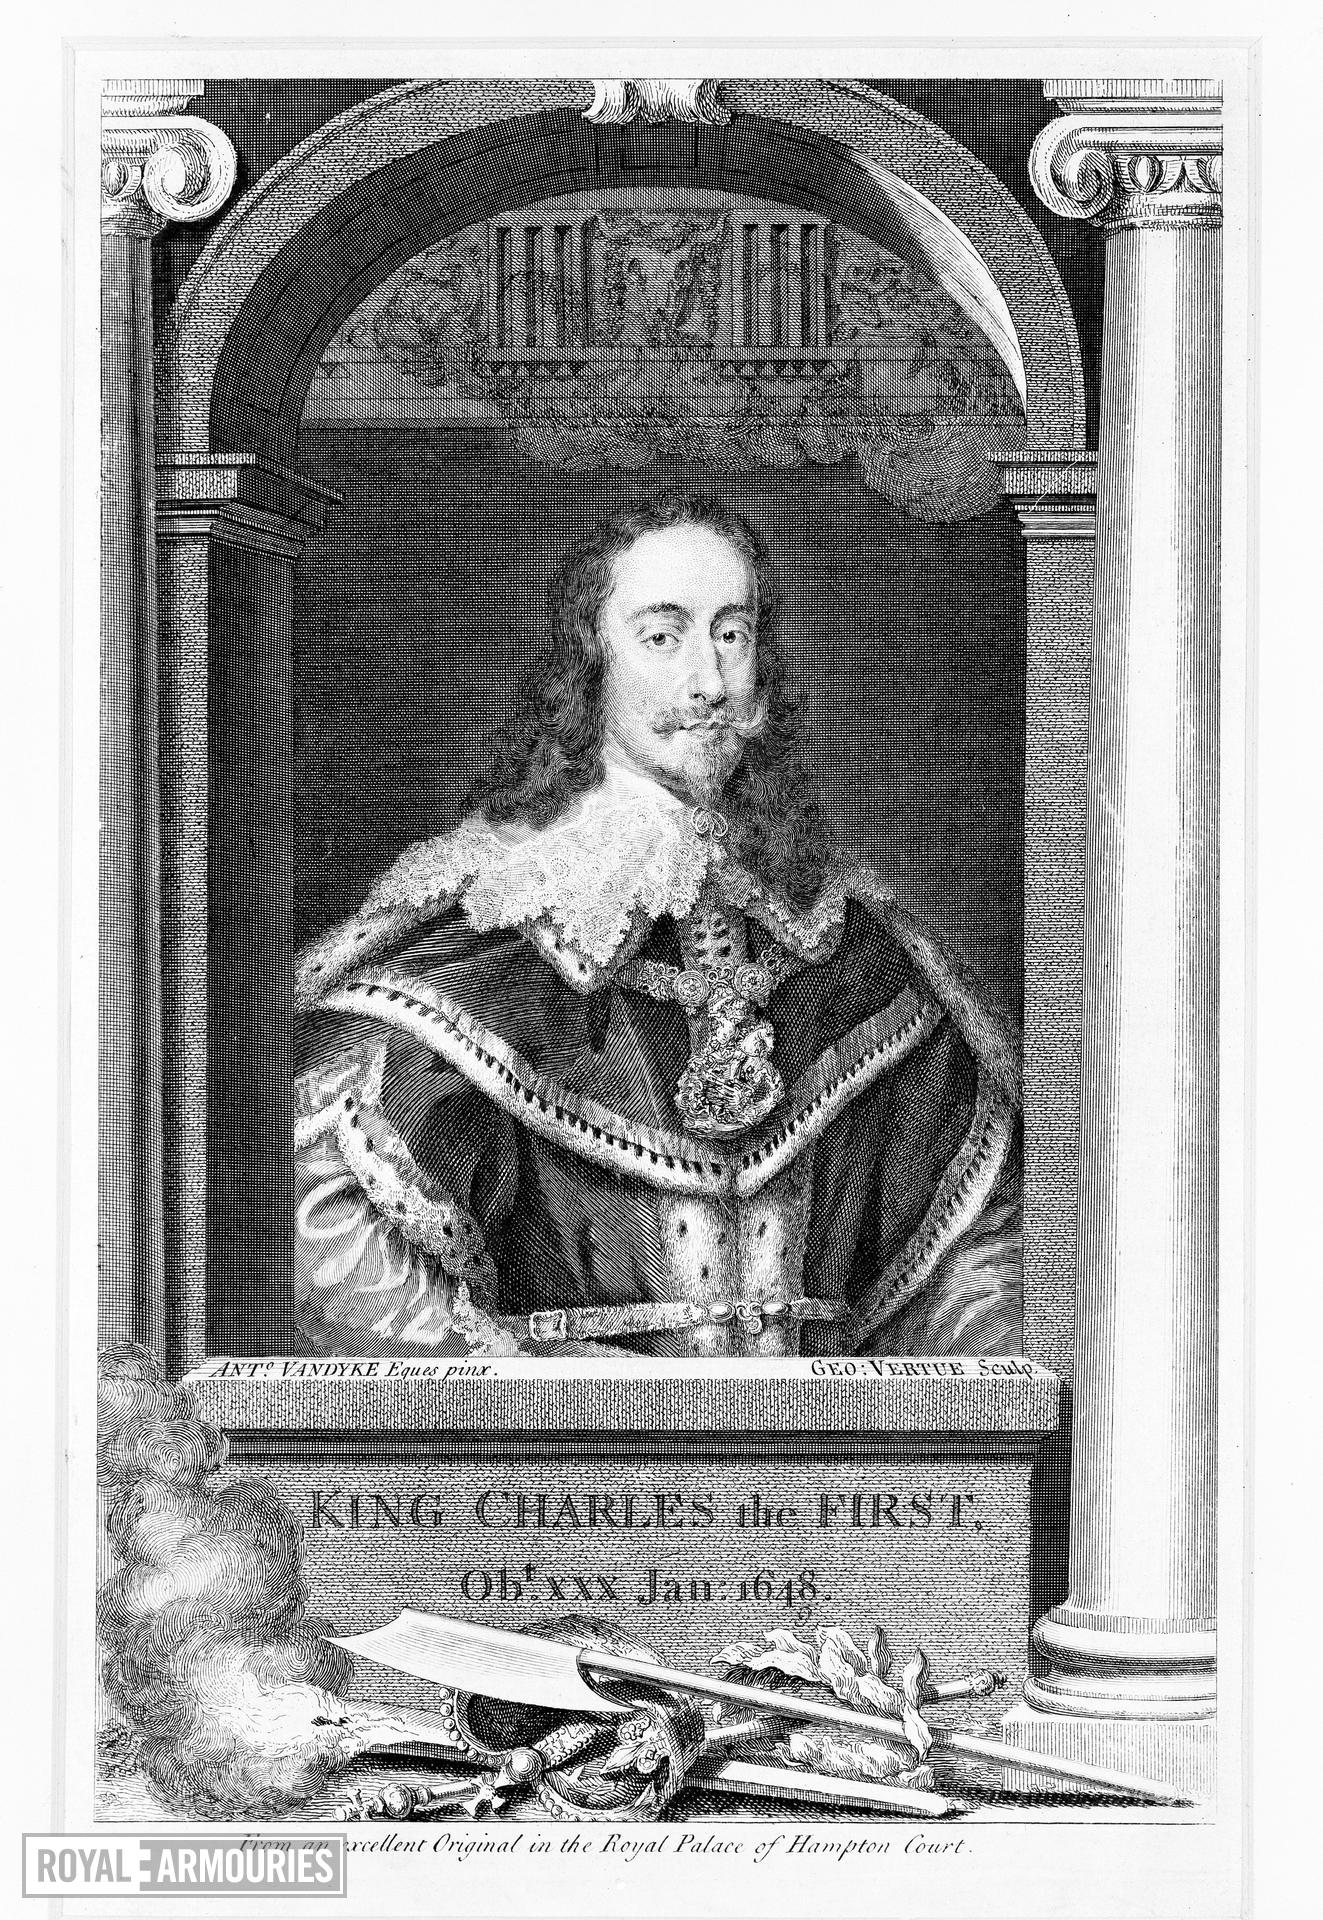 Print Engraved portrait of Charles I, 1600-1649.